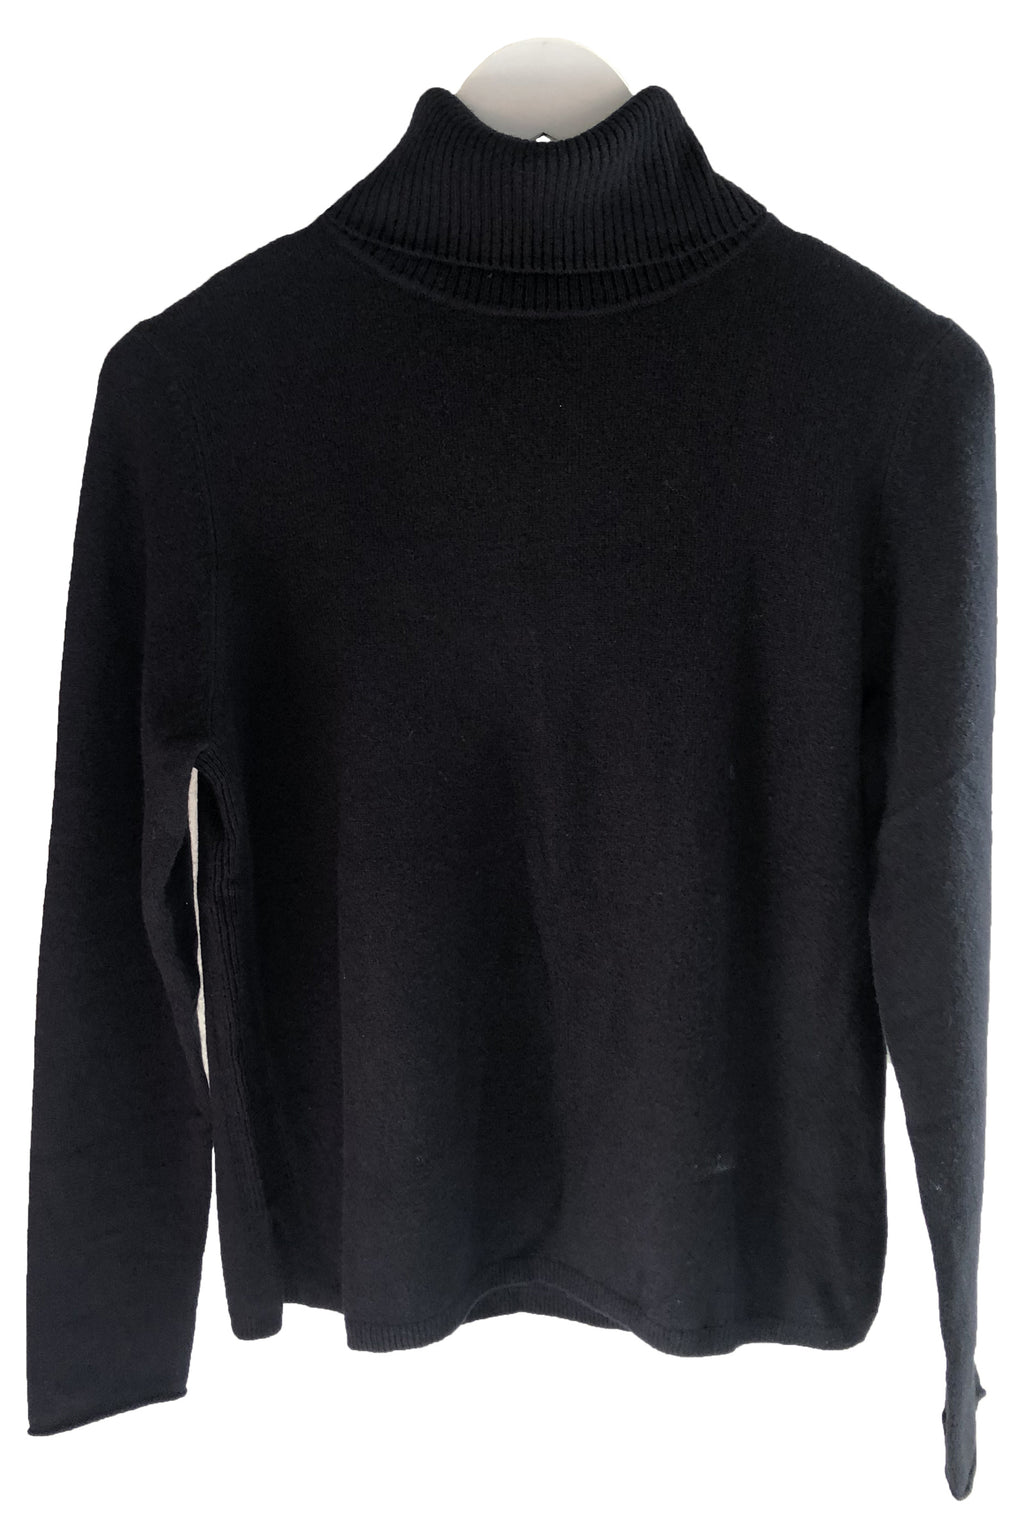 Not Shy Cashmere Turtleneck Sweater in Black